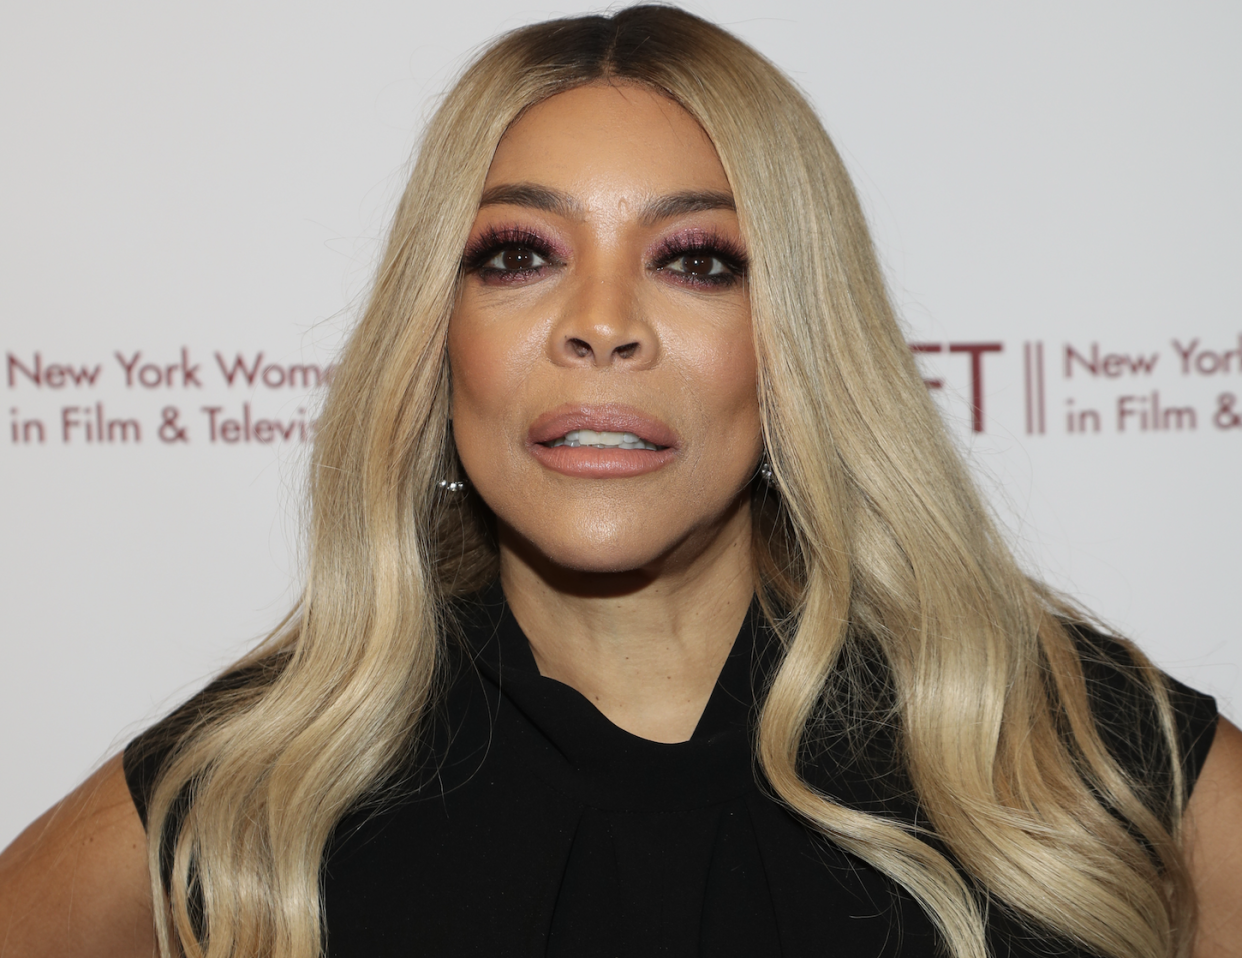 NEW YORK, NEW YORK - DECEMBER 10: Wendy Williams attends the 2019 40th Annual NYWIFT Muse Awards at New York Hilton Midtown on December 10, 2019 in New York City. (Photo by Manny Carabel/Getty Images)